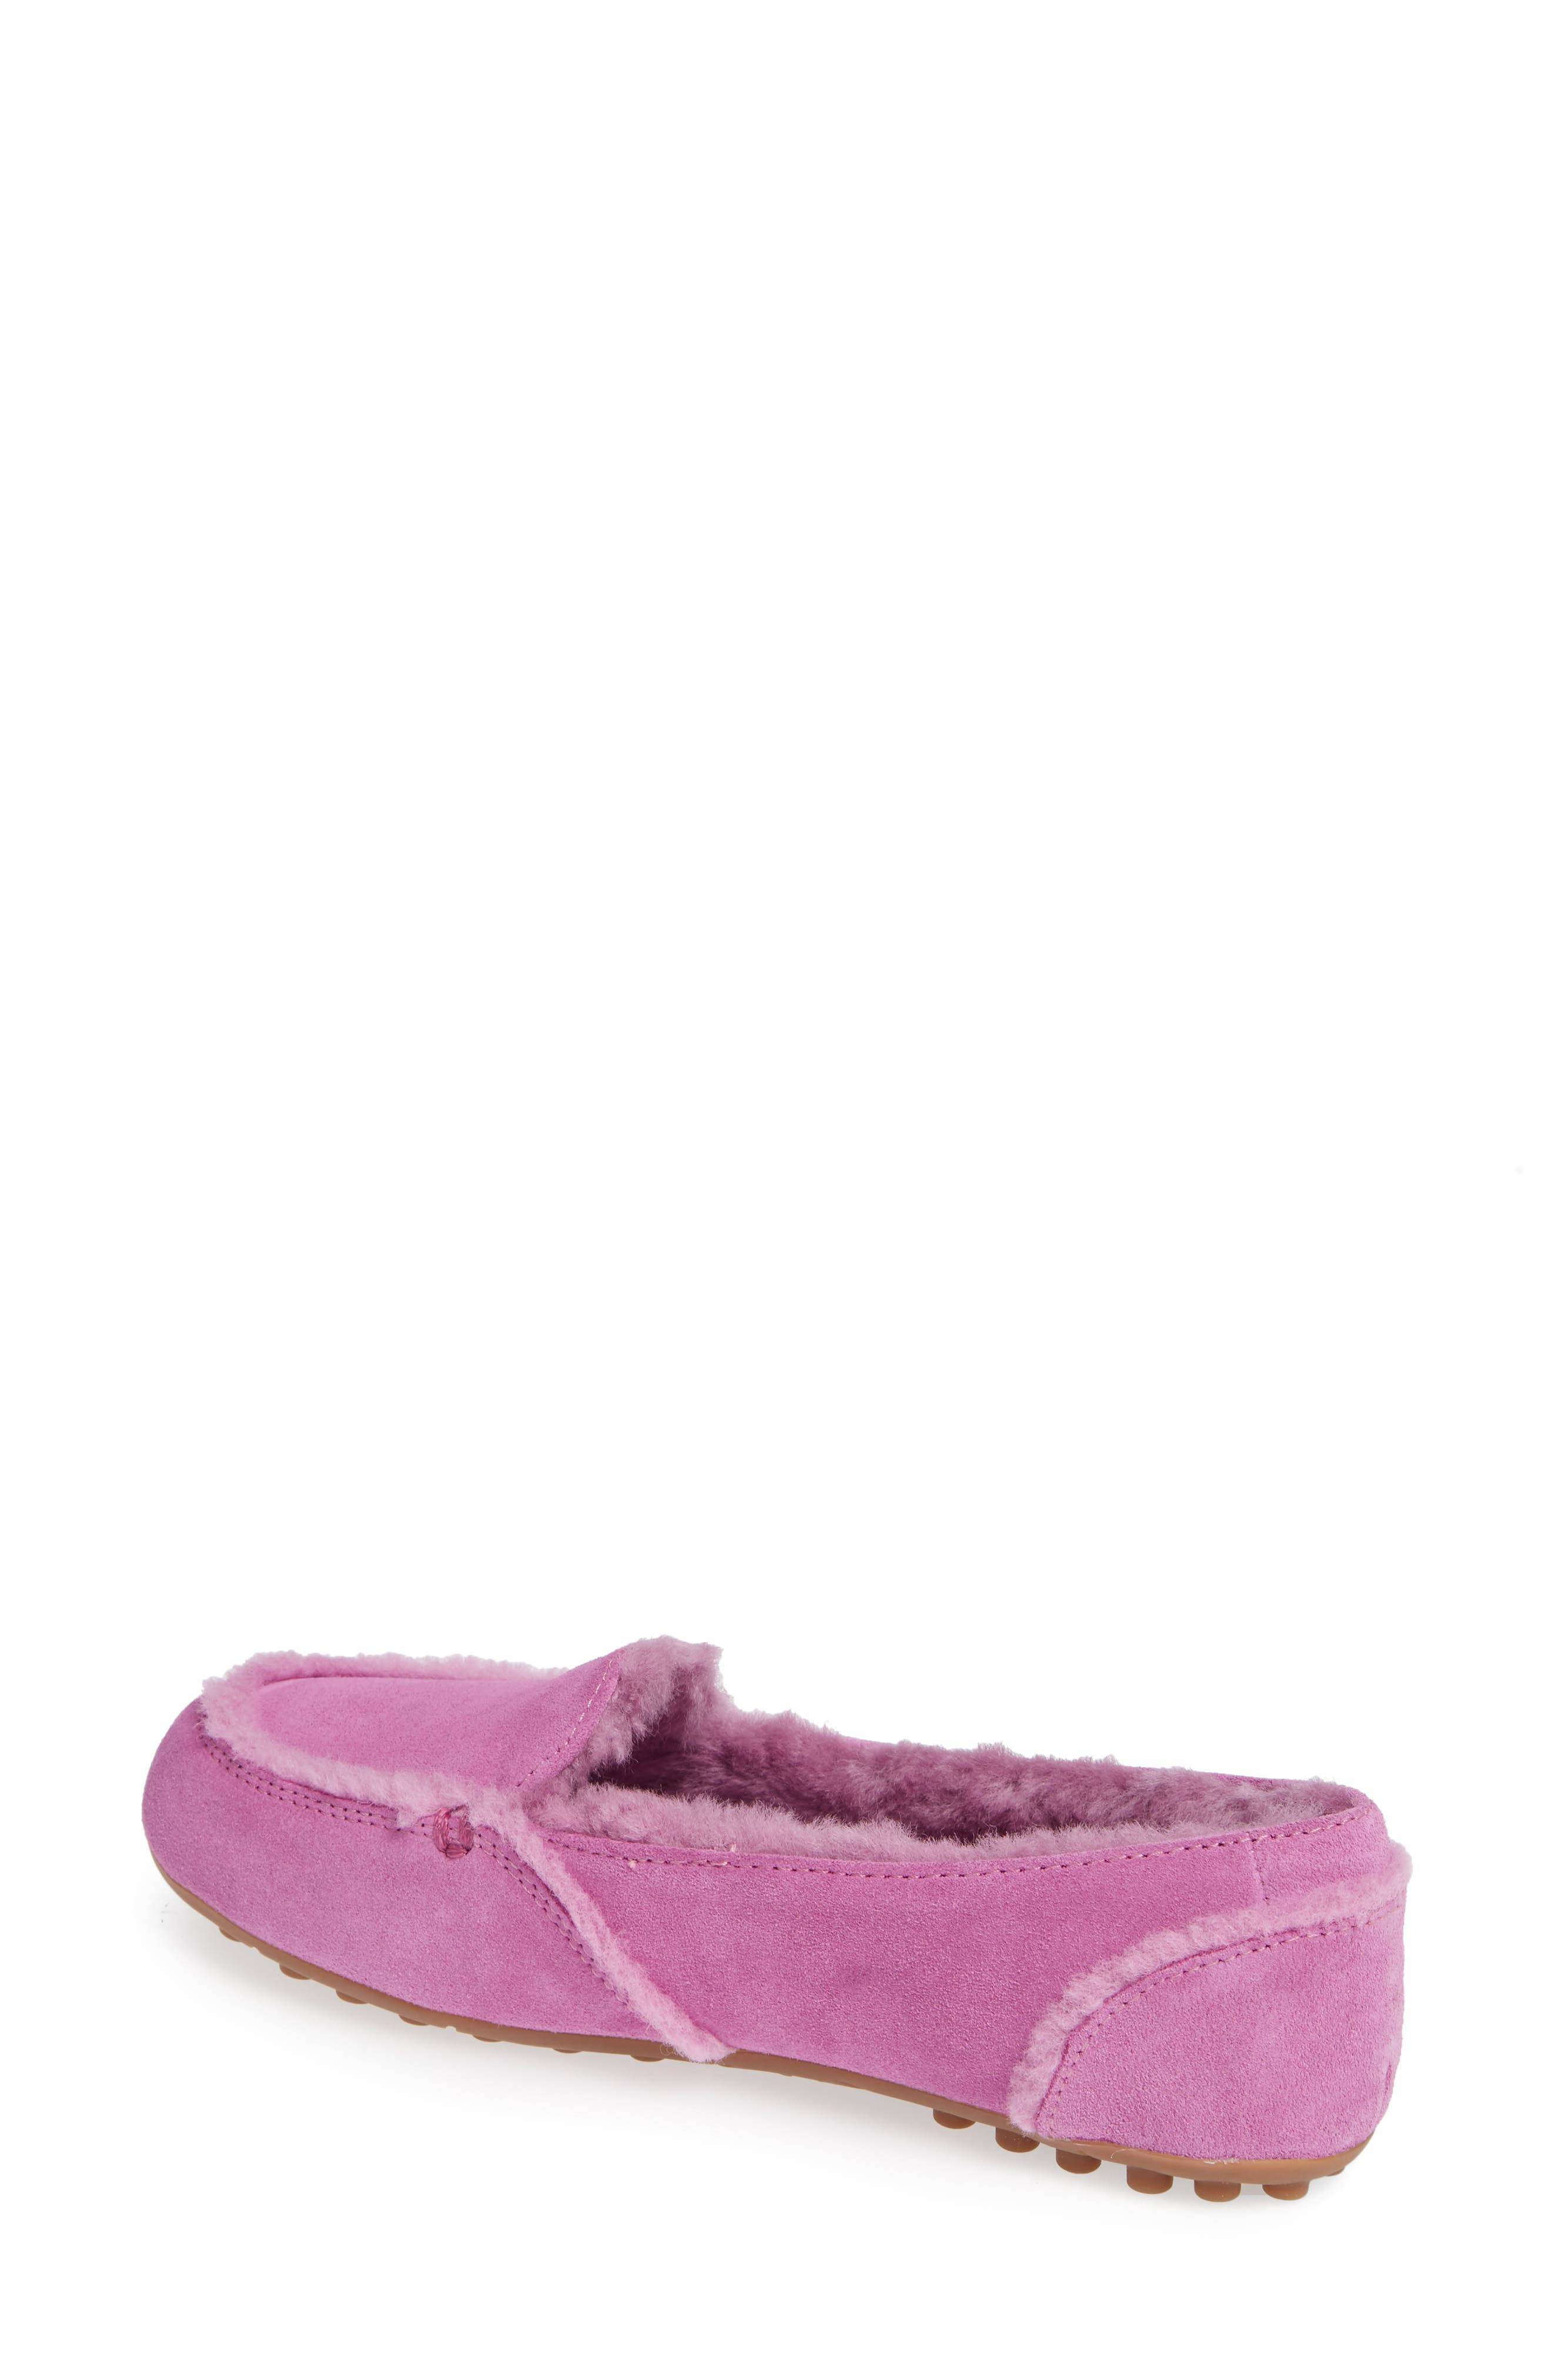 Hailey Slipper,                             Alternate thumbnail 2, color,                             BODACIOUS SUEDE